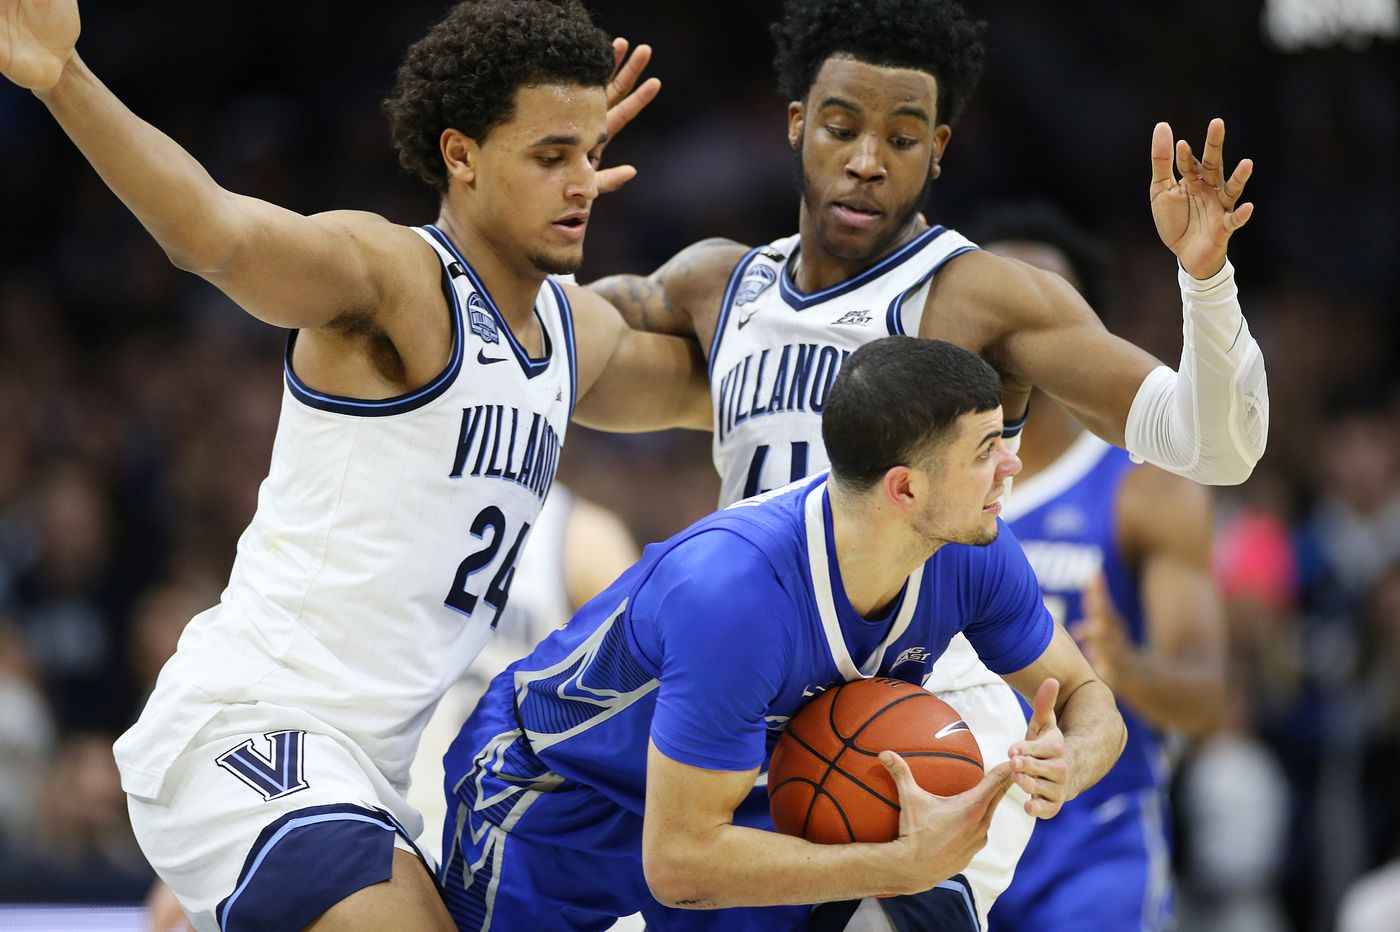 Villanova hopes its next Big East rematch goes better than the previous one